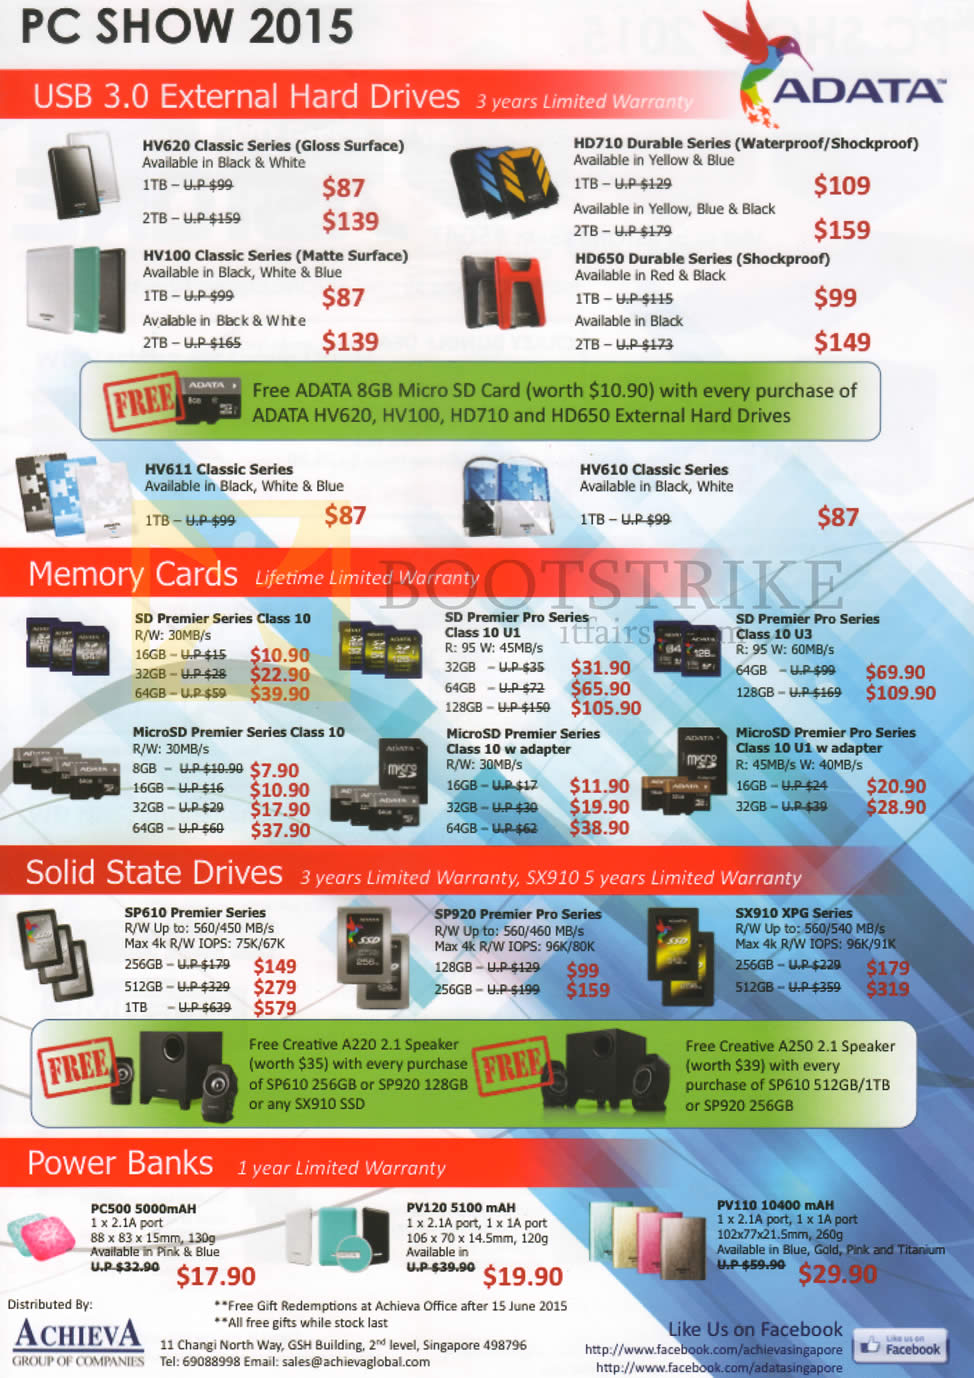 PC SHOW 2015 price list image brochure of Achieva External Storage Drives, Memory Cards MicroSD, Solid State Drives, Power Banks, SSD